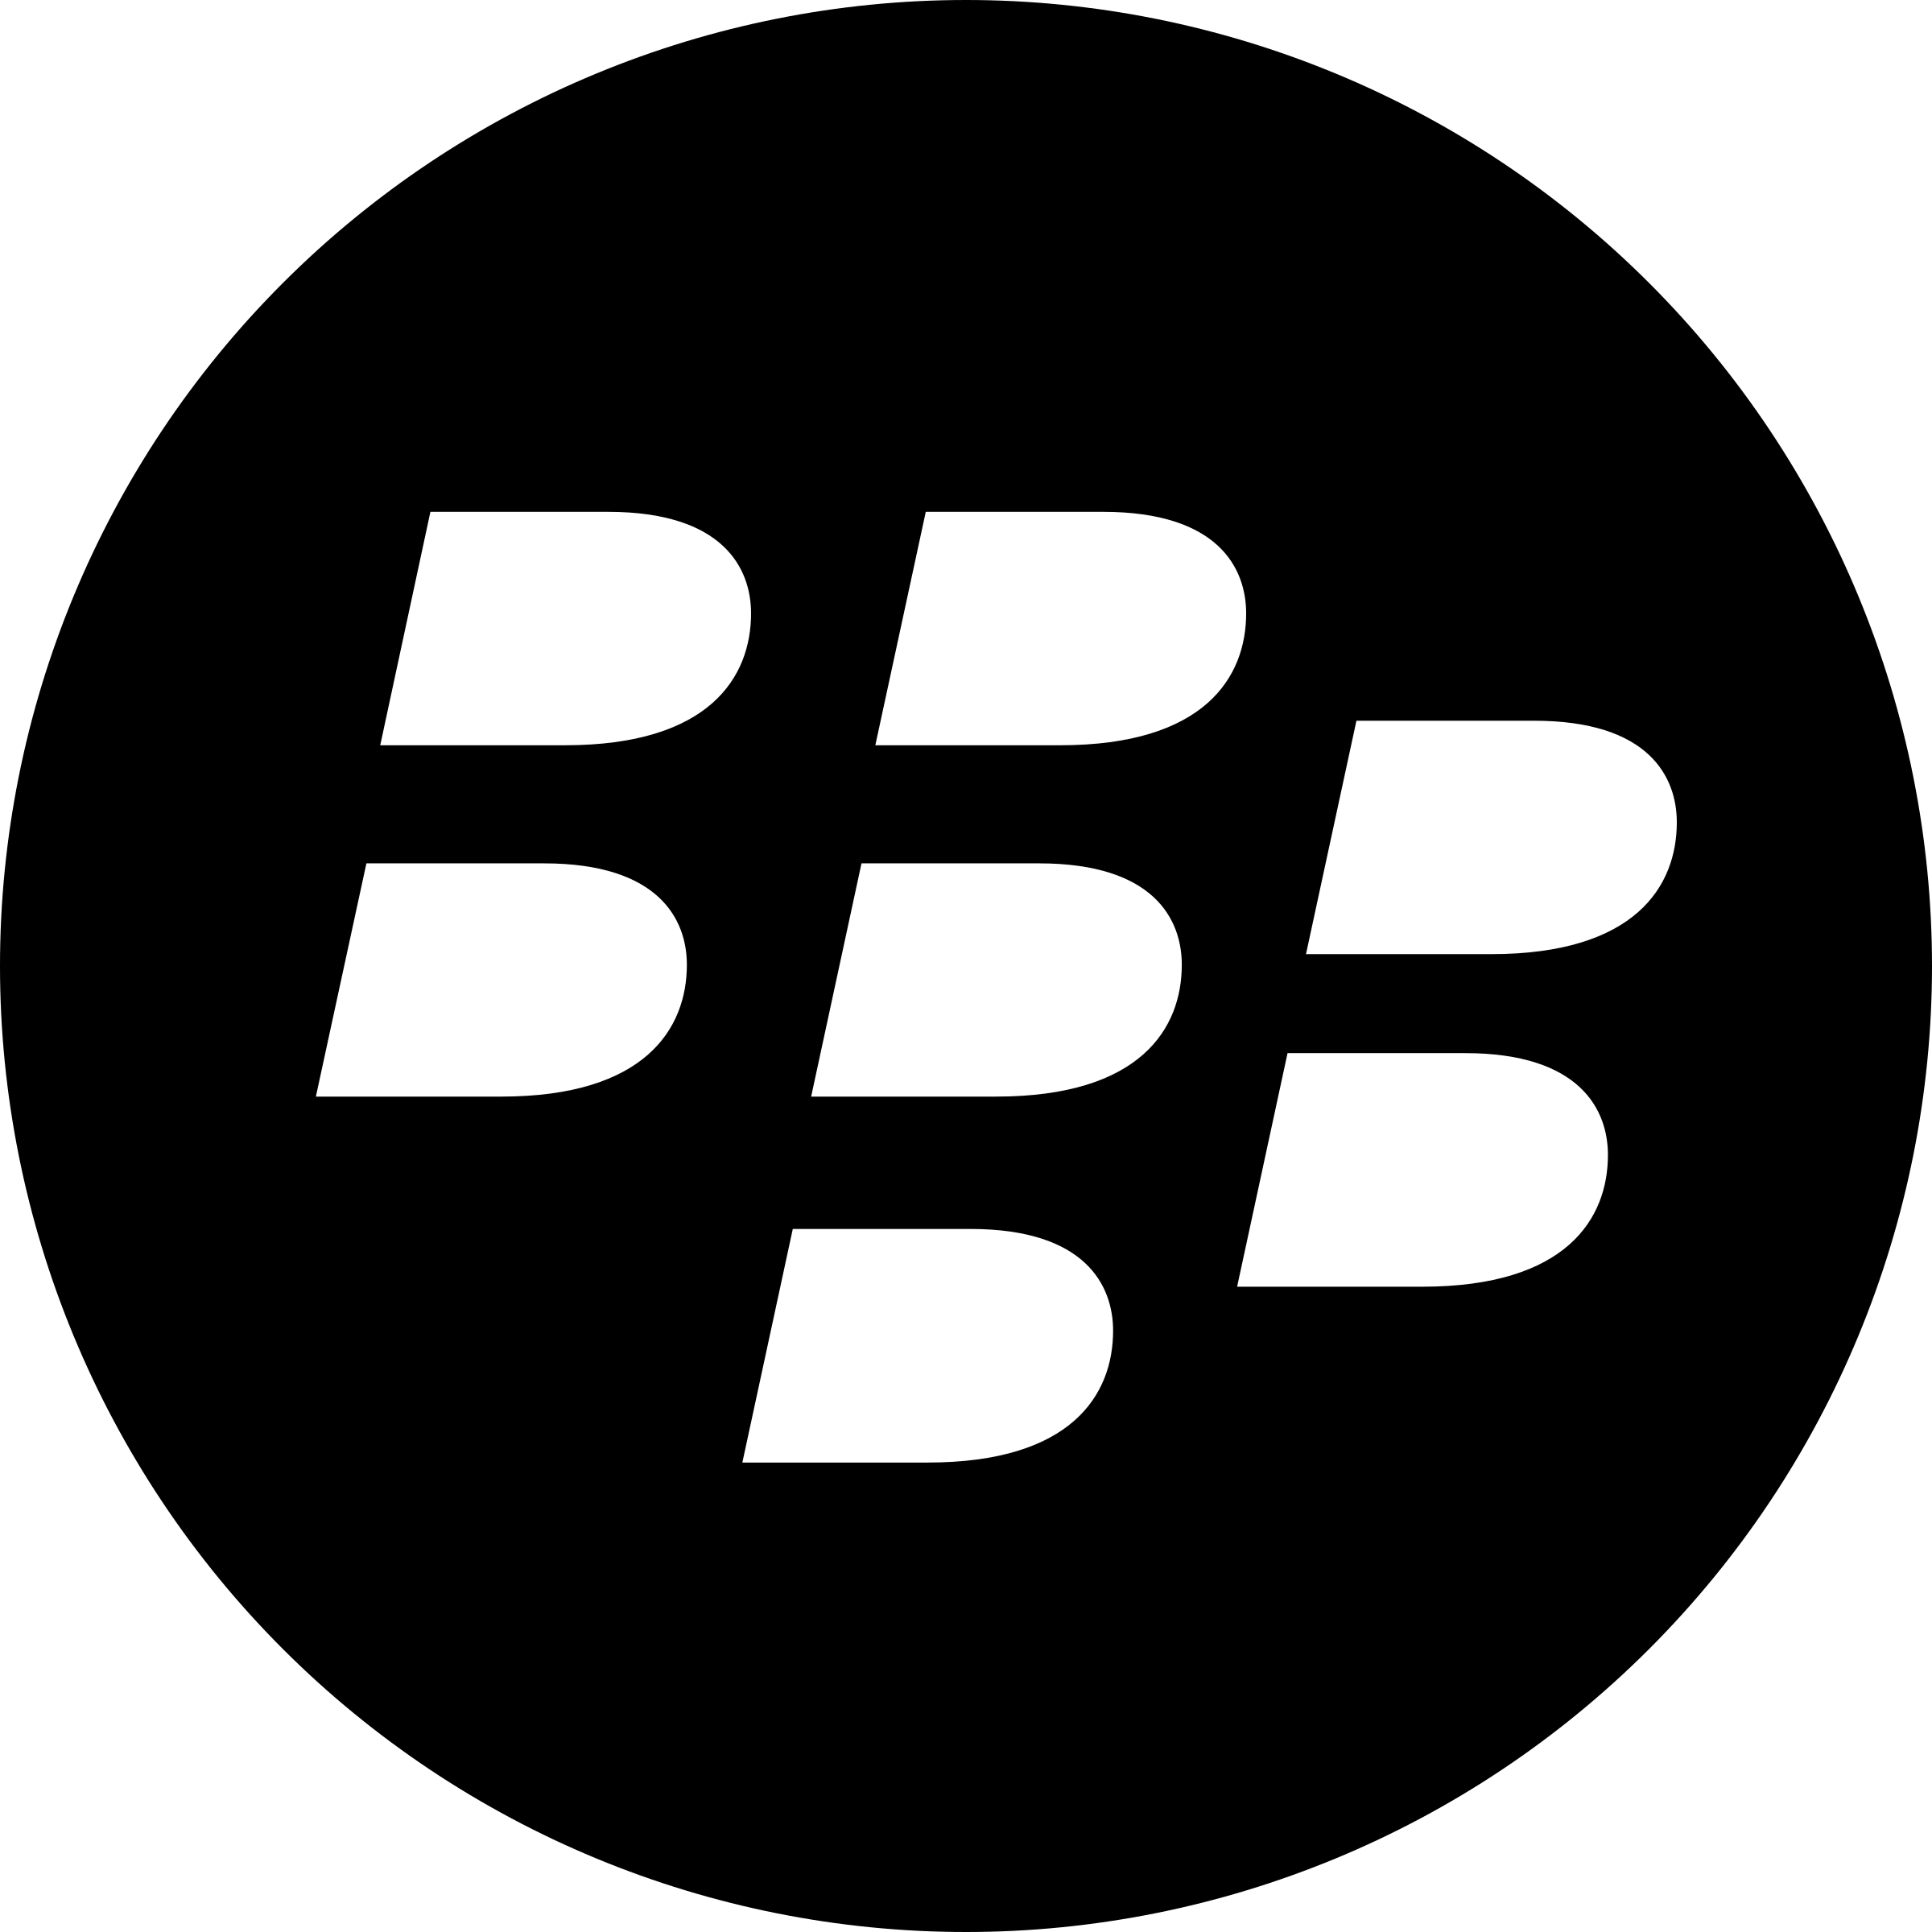 BBM BlackBerry Messenger Logo PNG Transparent & SVG Vector.